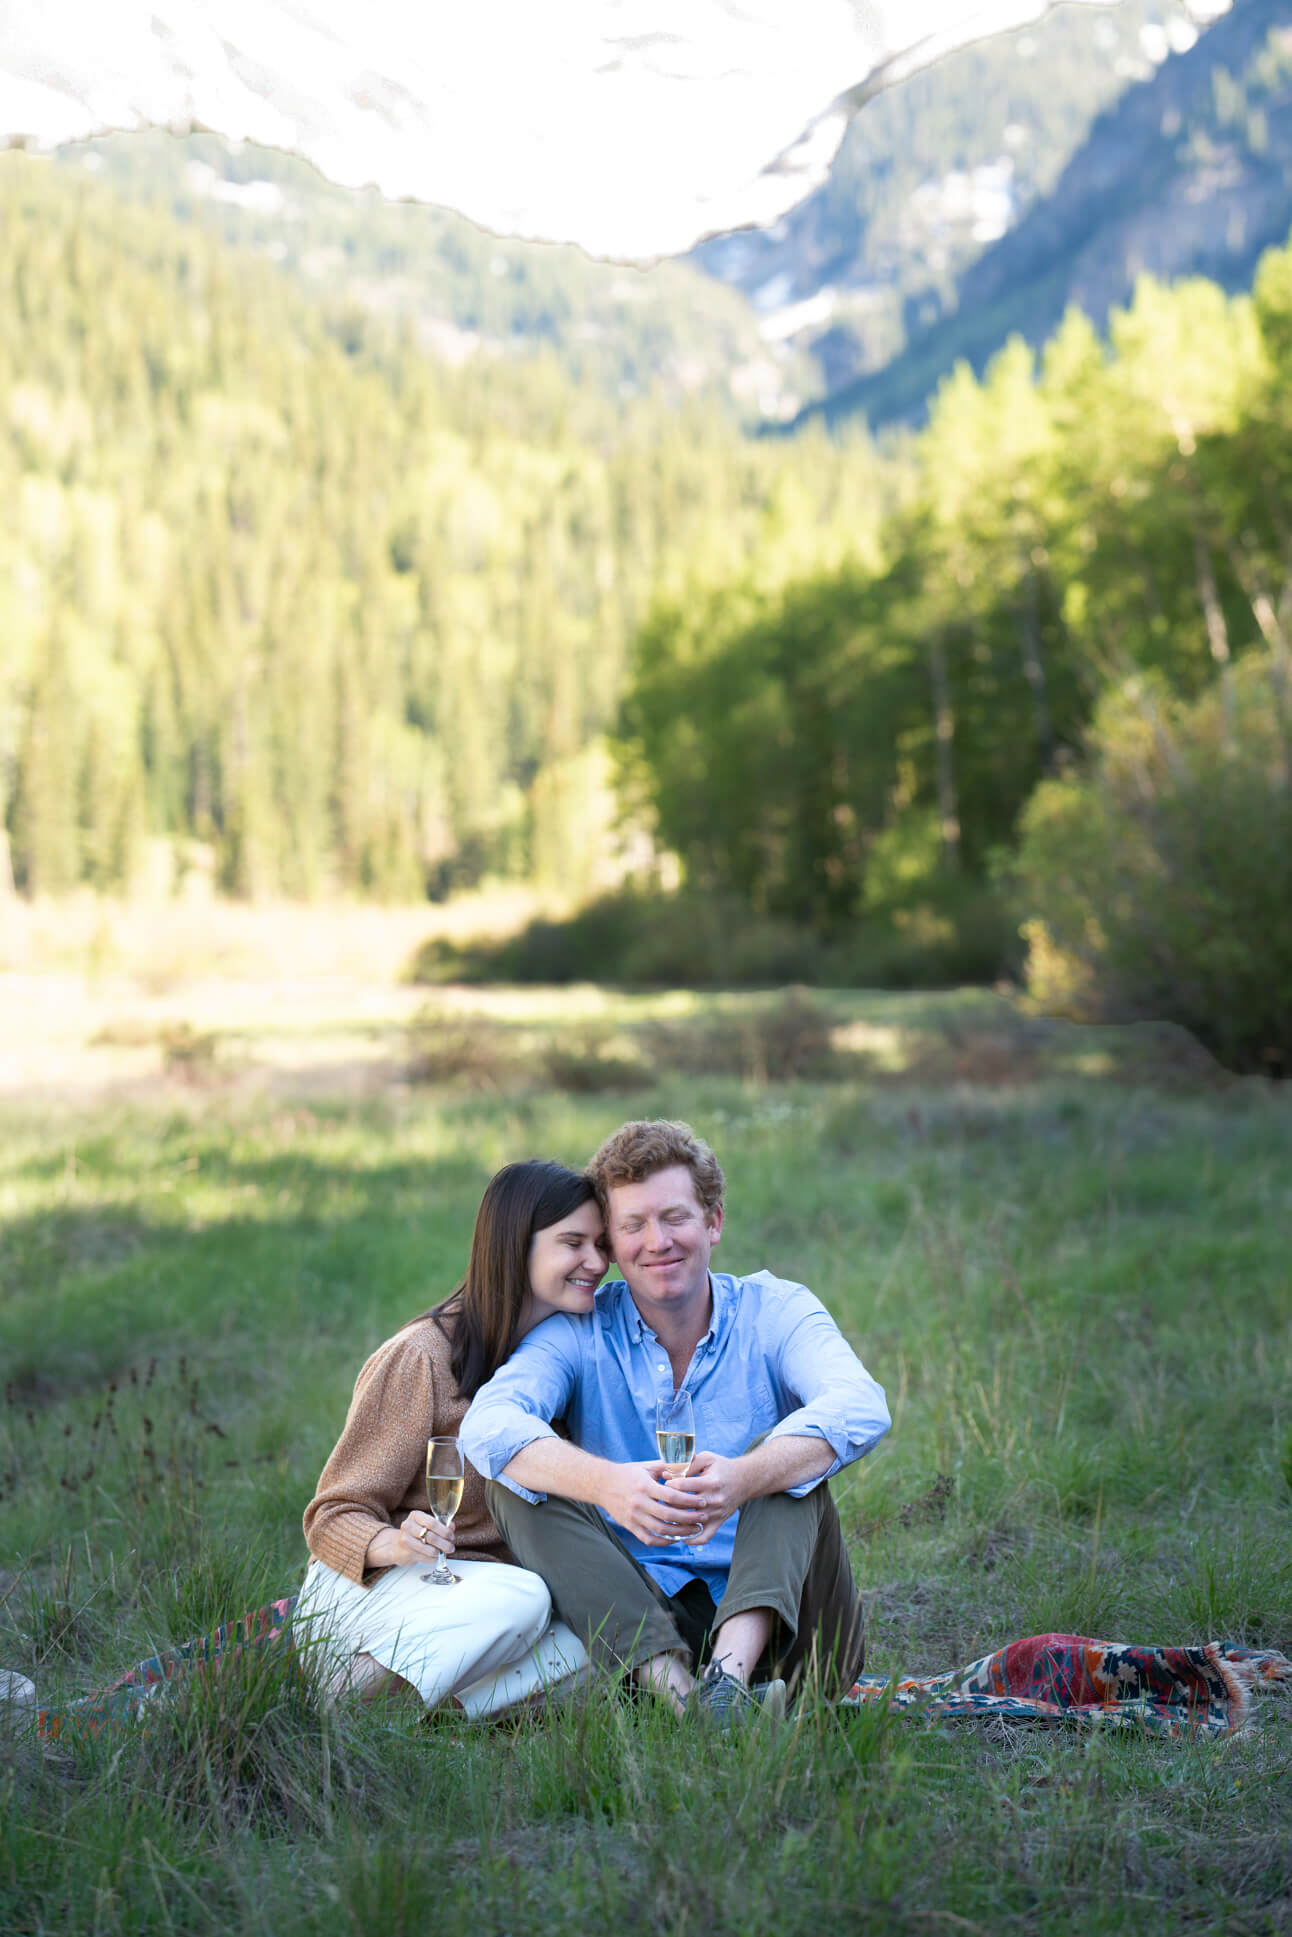 Engagement photo in the mountains